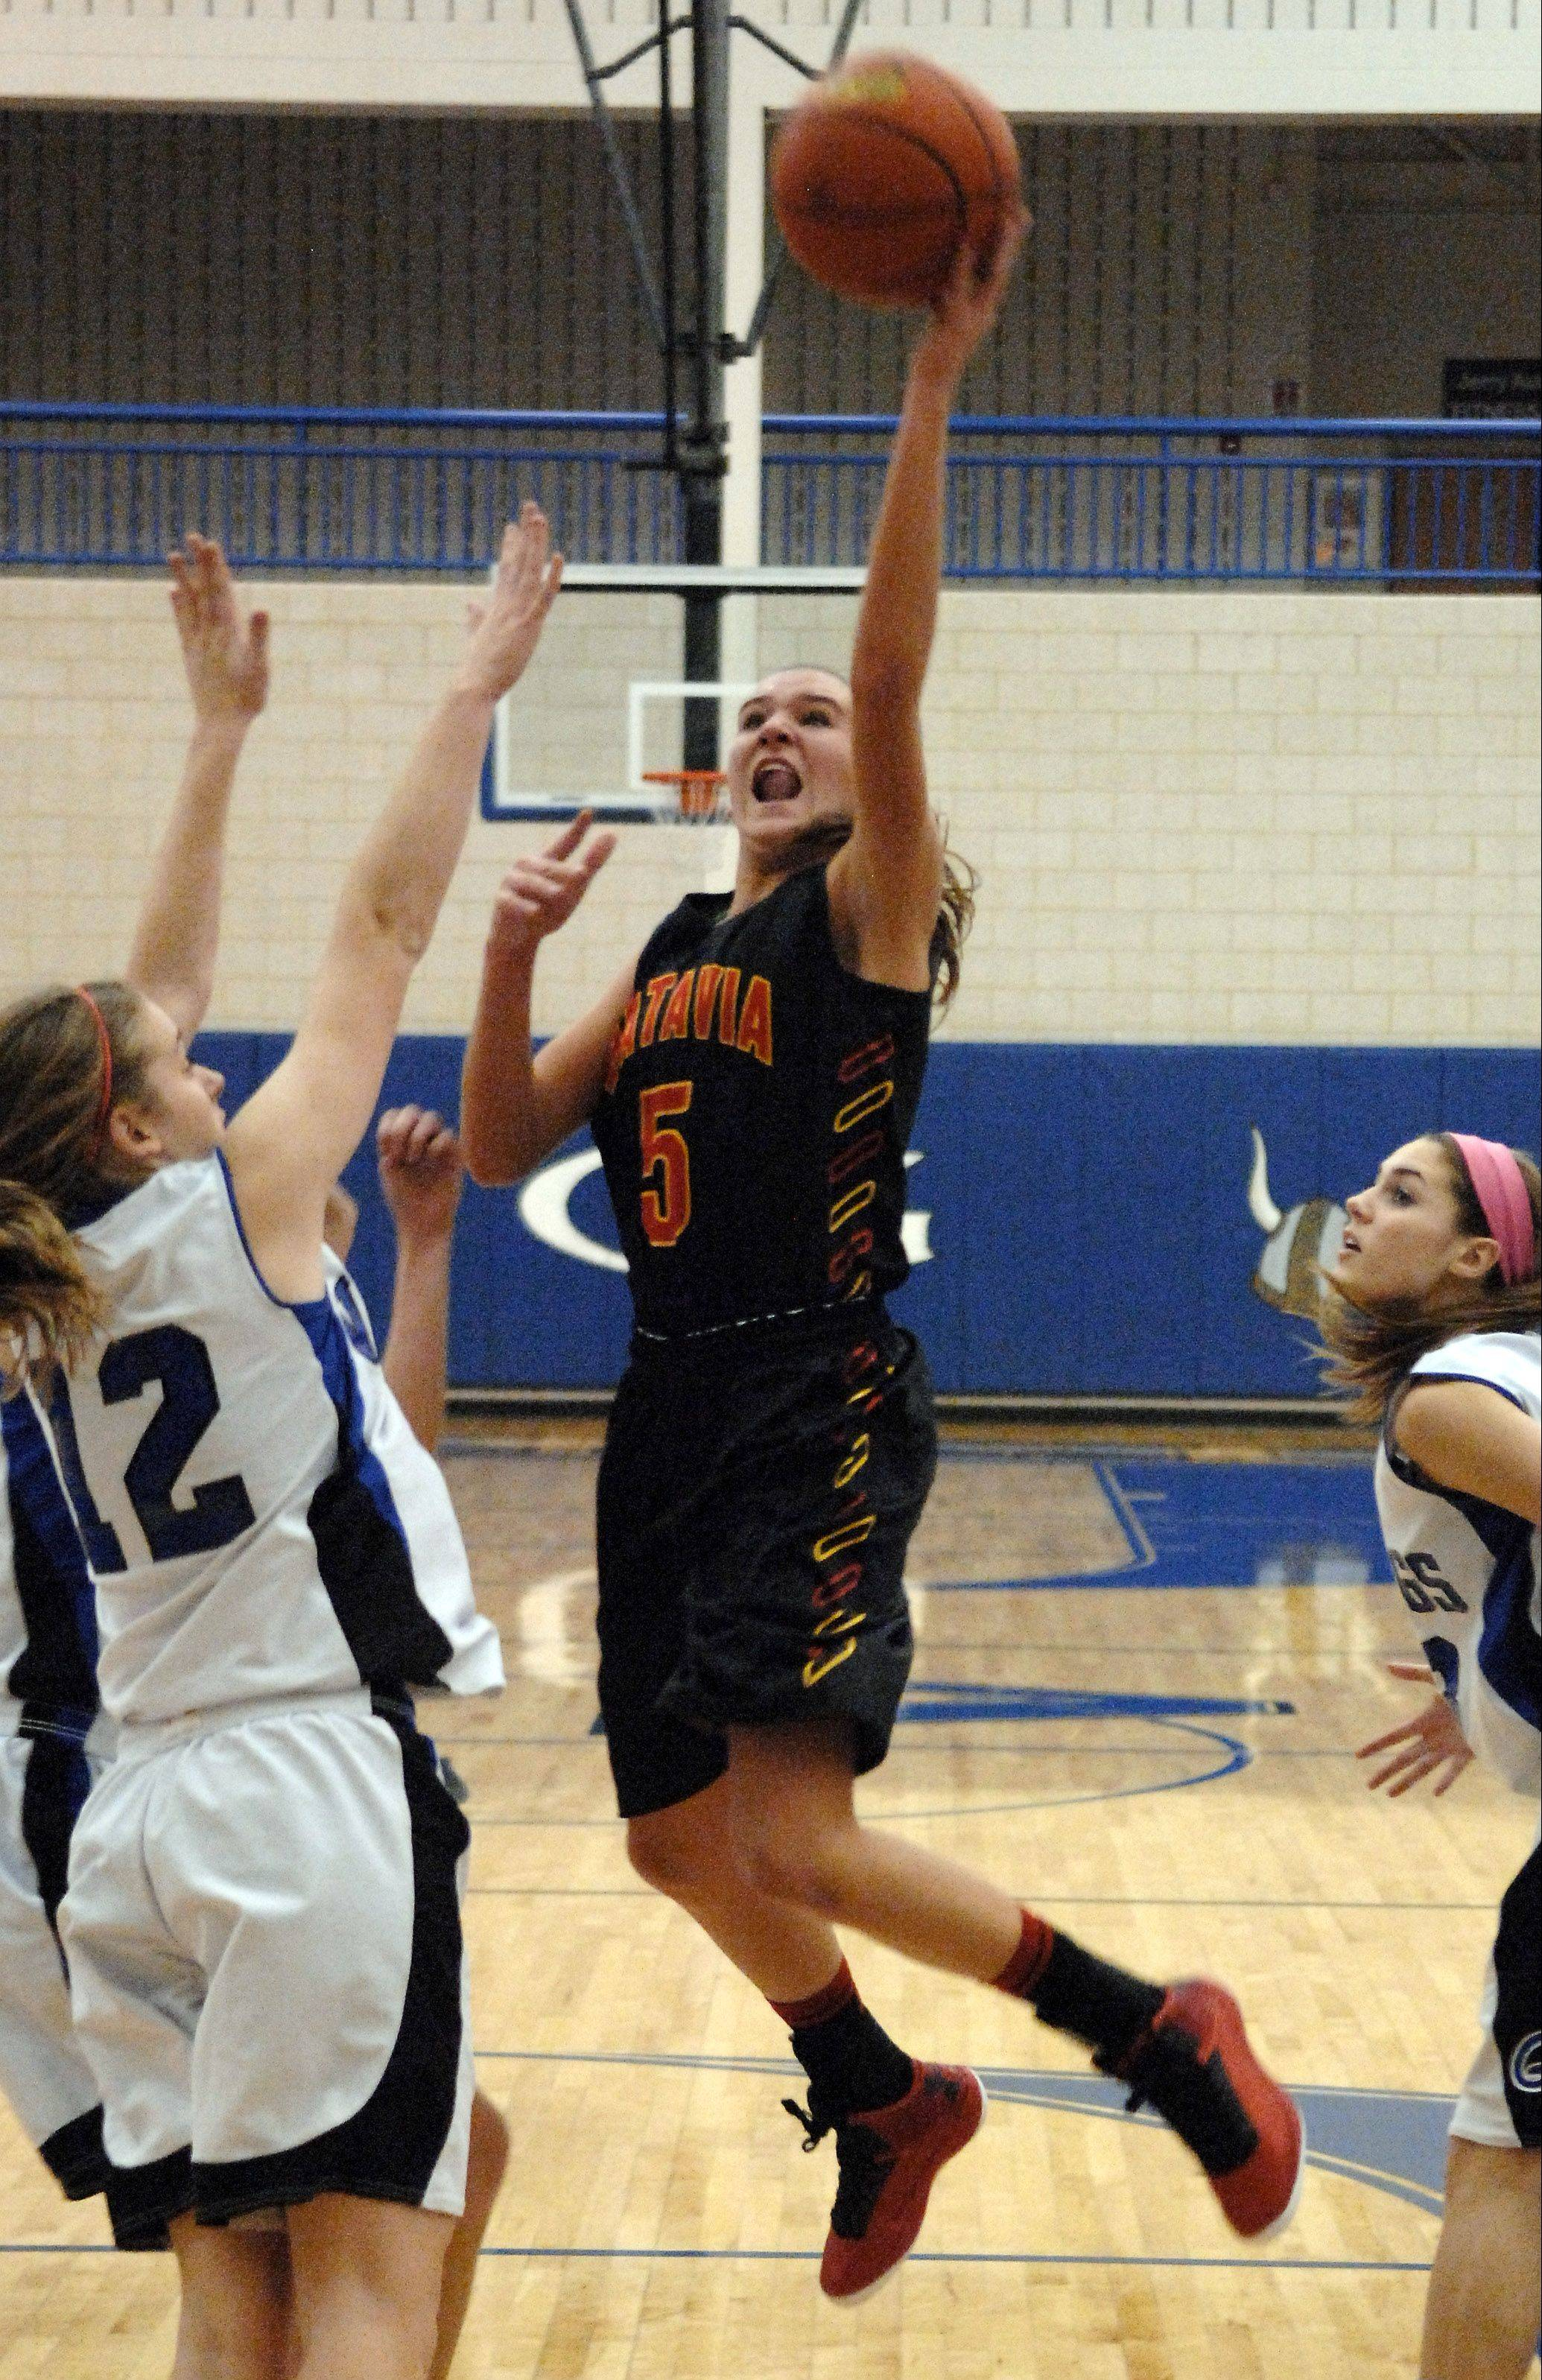 Batavia�s Liza Fruendt led the area in scoring with drives to the basket like this and also by draining 80 3-point baskets.